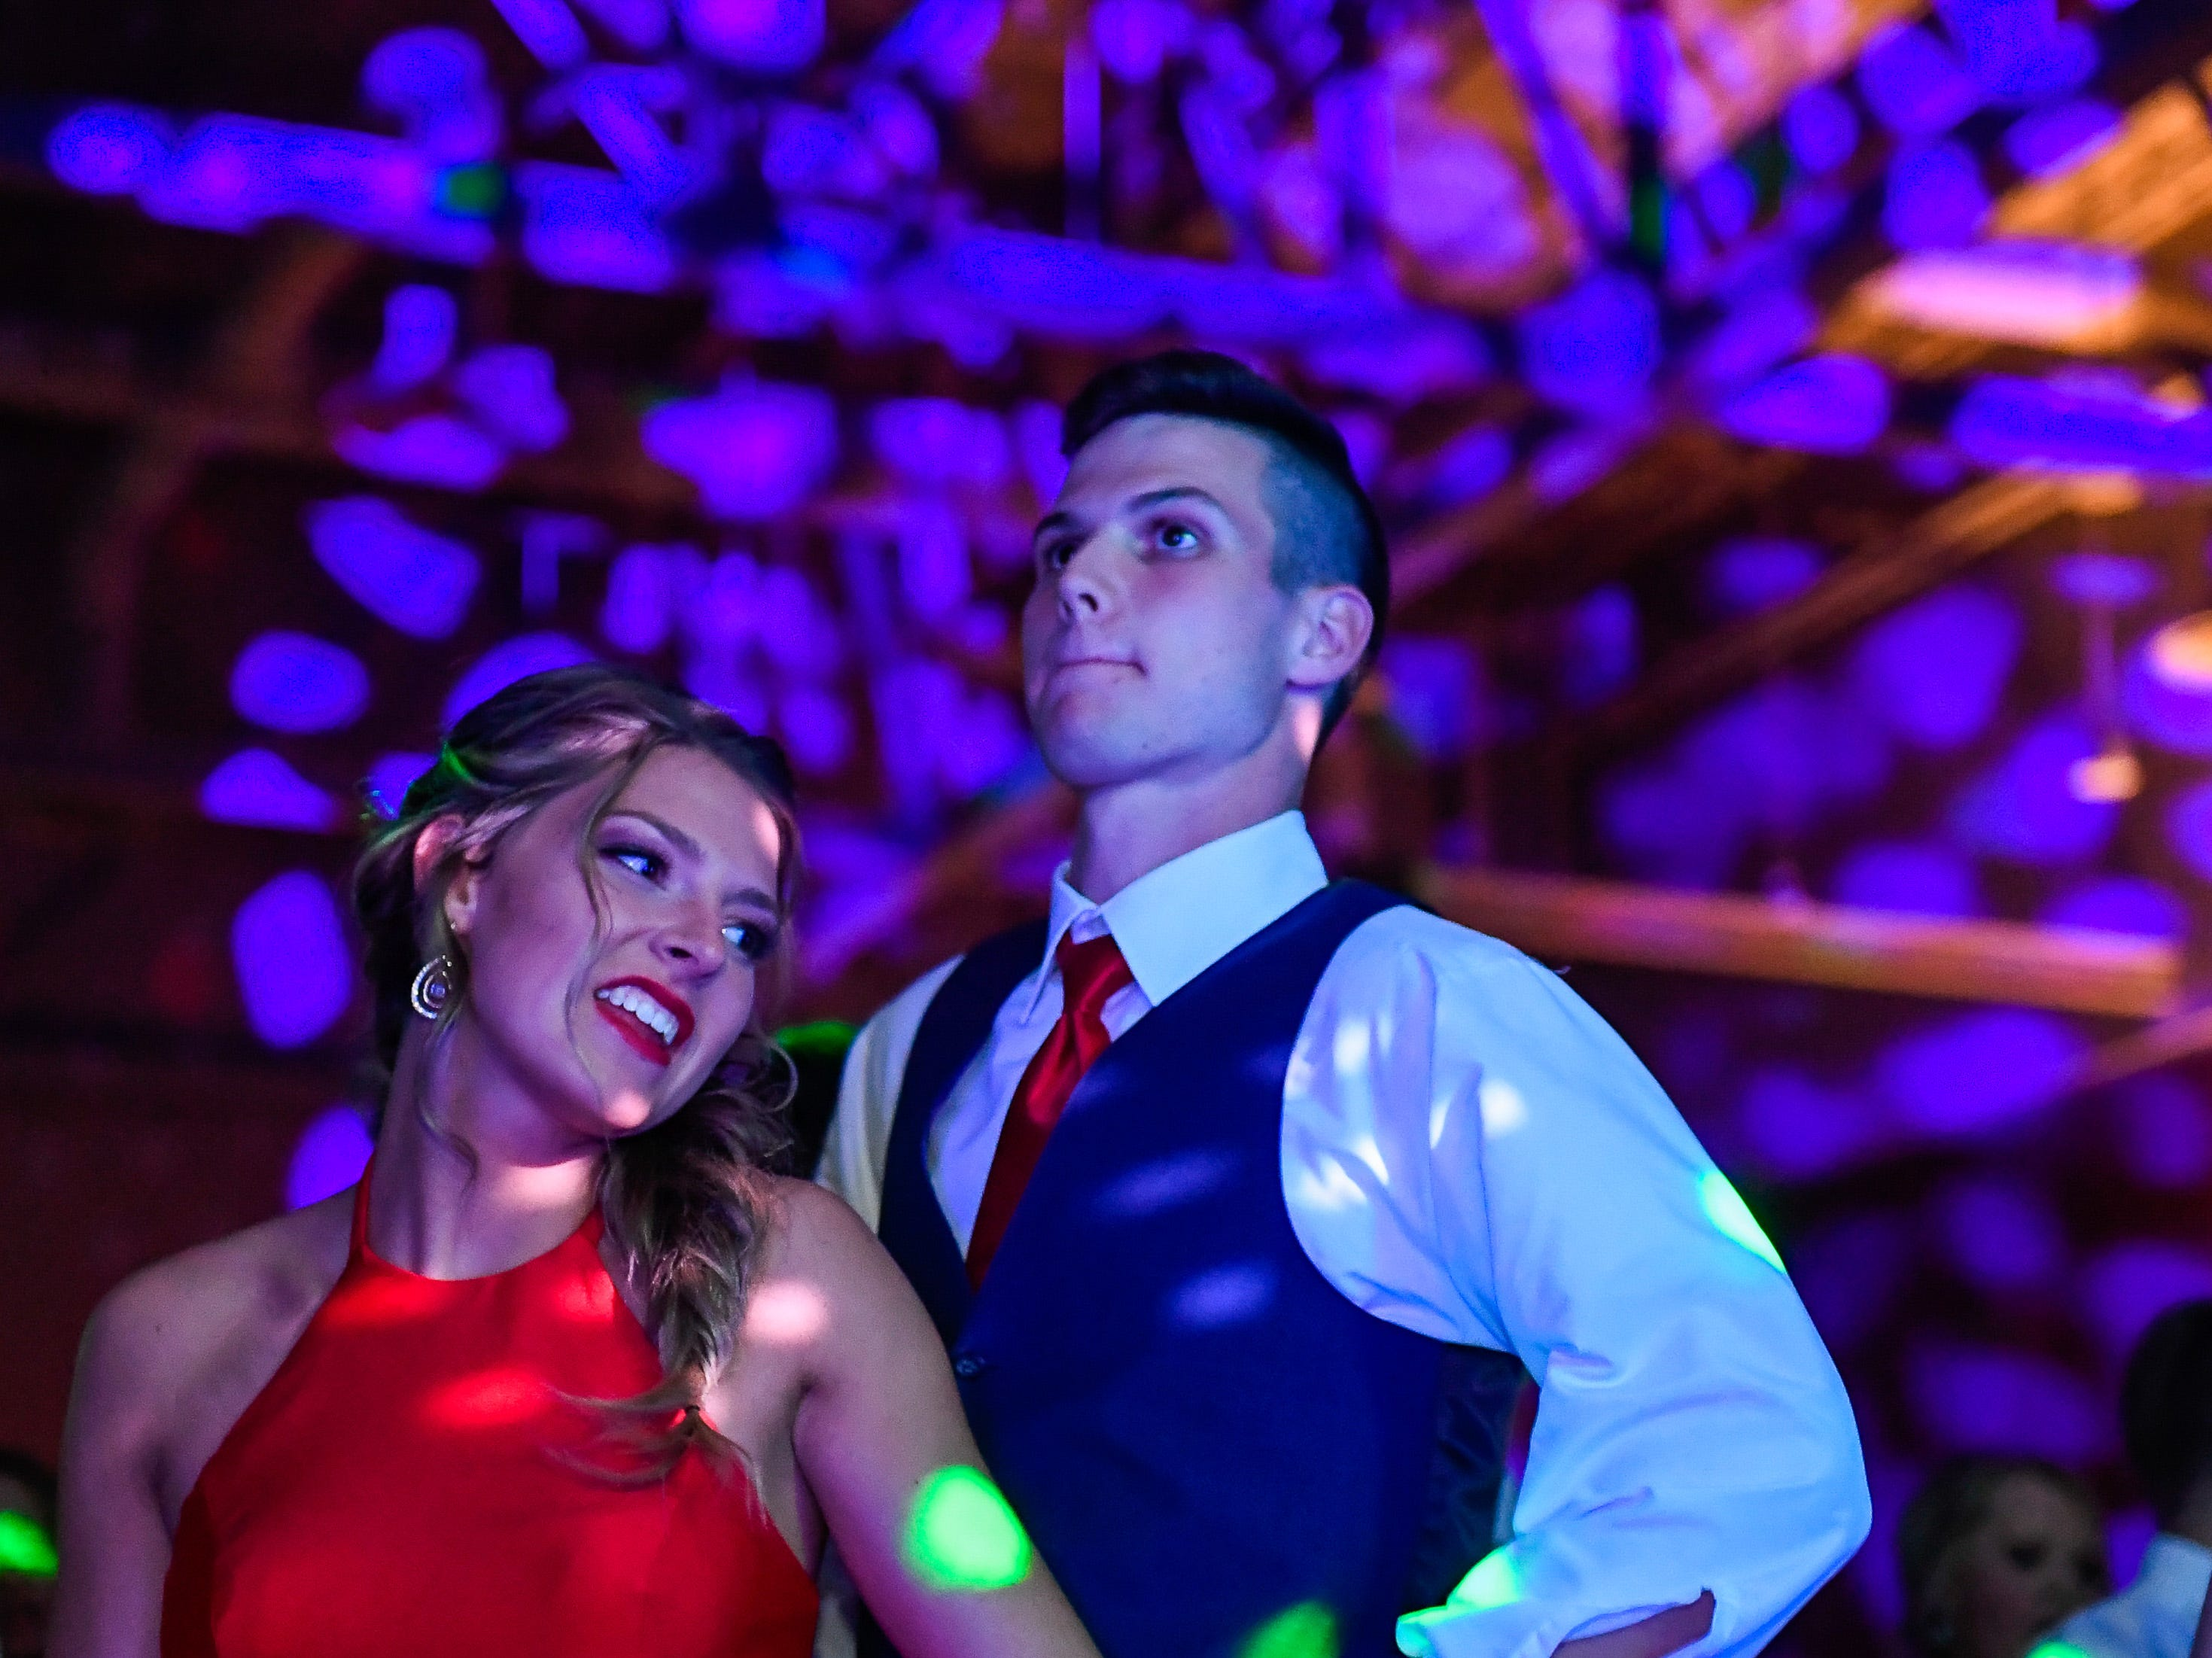 Ramey Wilder and Rylan Hicks dance at the Boonville High School prom, held at the Old National Events Center Plaza Saturday, April 27, 2019.